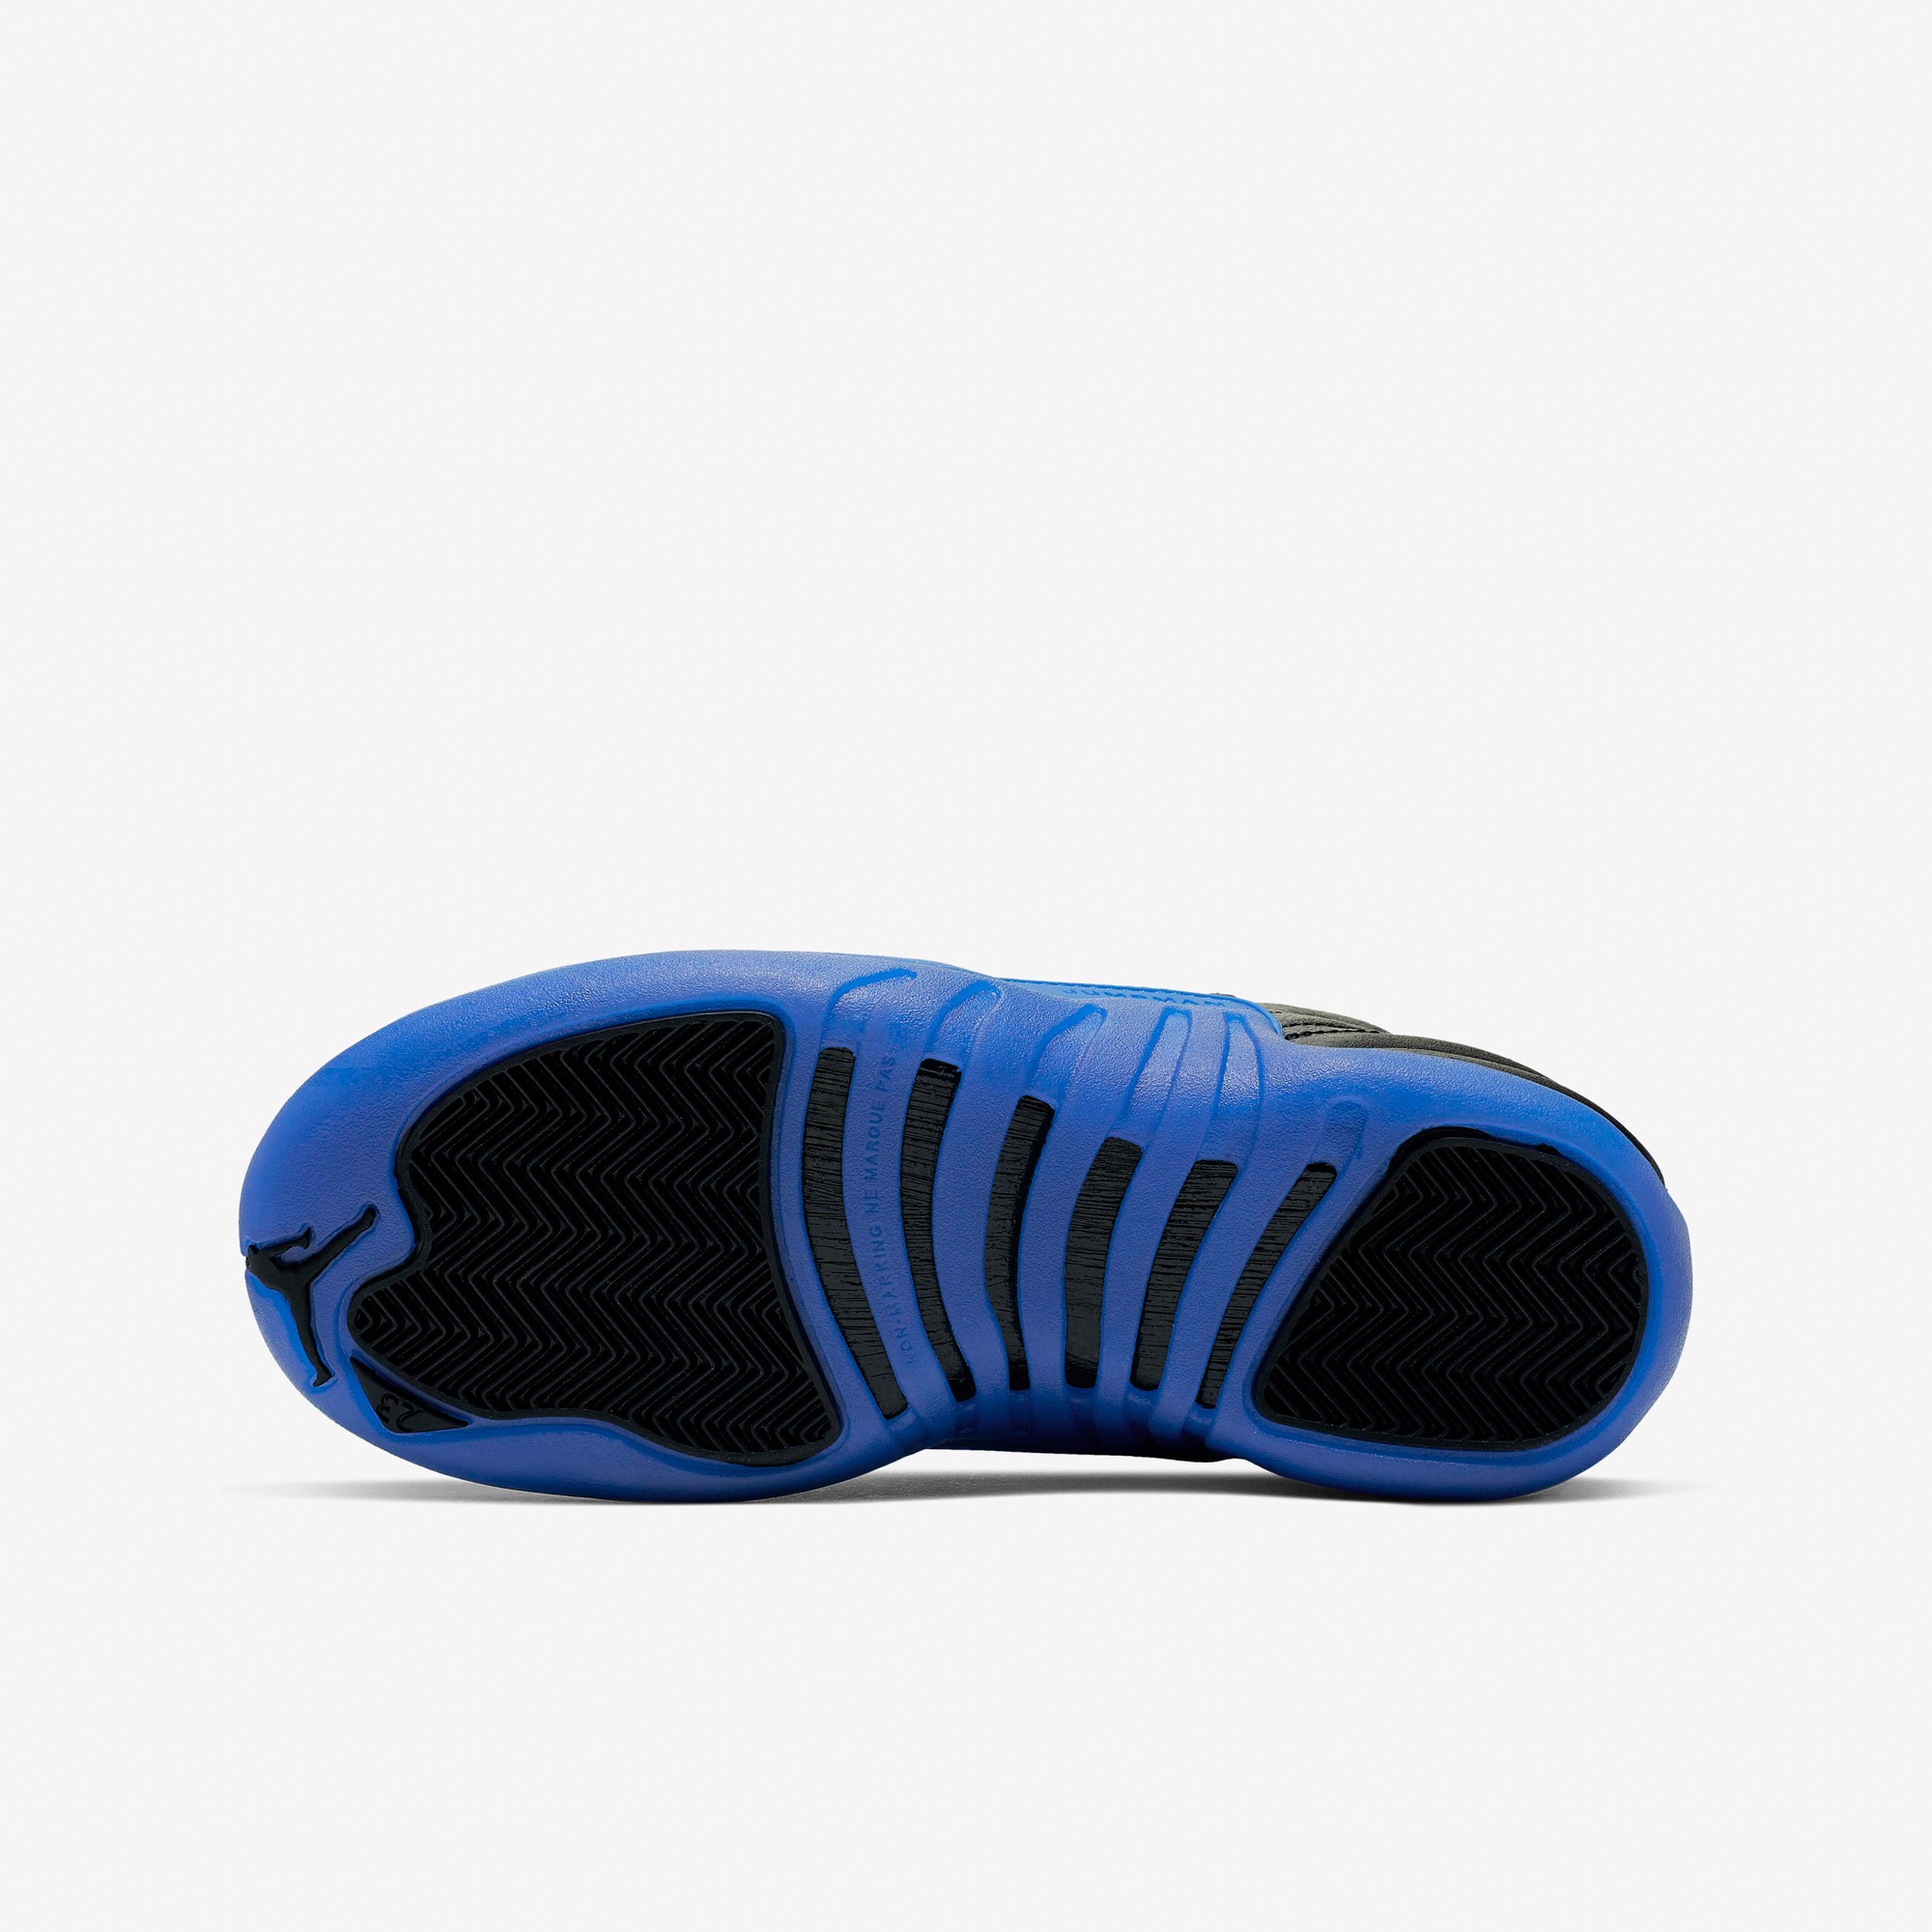 Air Jordan 12 GS - Game Royal